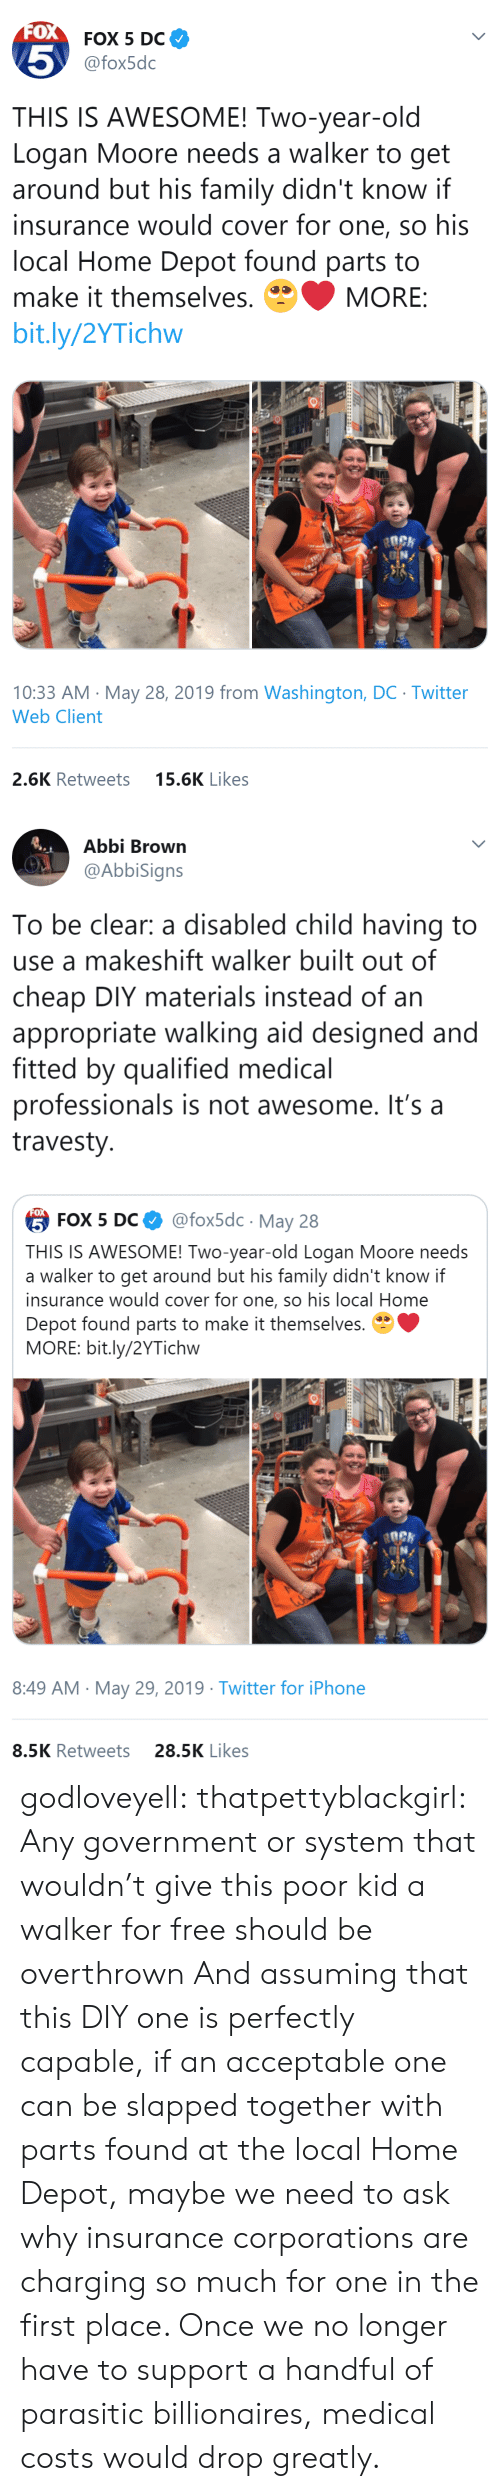 Depot: FOX  FOX 5 DC  5  @fox5dc  THIS IS AWESOME! Two-year-old  Logan Moore needs a walker to get  around but his family didn't know if  insurance would cover for one, so his  local Home Depot found parts to  make it themselves.  MORE:  bit.ly/2YTichw  10:33 AM May 28, 2019 from Washington, DC Twitter  Web Client  15.6K Likes  2.6K Retweets   Abbi Brown  @AbbiSigns  To be clear: a disabled child having to  use a makeshift walker built out of  cheap DIY materials instead of an  appropriate walking aid designed and  fitted by qualified medical  professionals is not awesome. It's a  travesty  FOX  @fox5dc May 28  5 FOX 5 DС  THIS IS AWESOME! Two-year-old Logan Moore needs  a walker to get around but his family didn't know if  insurance would cover for one, so his local Home  Depot found parts to make it themselves.  MORE: bit.ly/2YTichw  8:49 AM May 29, 2019 Twitter for iPhone  28.5K Likes  8.5K Retweets godloveyell:  thatpettyblackgirl:  Any government or system that wouldn't give this poor kid a walker for free should be overthrown   And assuming that this DIY one is perfectly capable, if an acceptable one can be slapped together with parts found at the local Home Depot, maybe we need to ask why insurance corporations are charging so much for one in the first place.  Once we no longer have to support a handful of parasitic billionaires, medical costs would drop greatly.